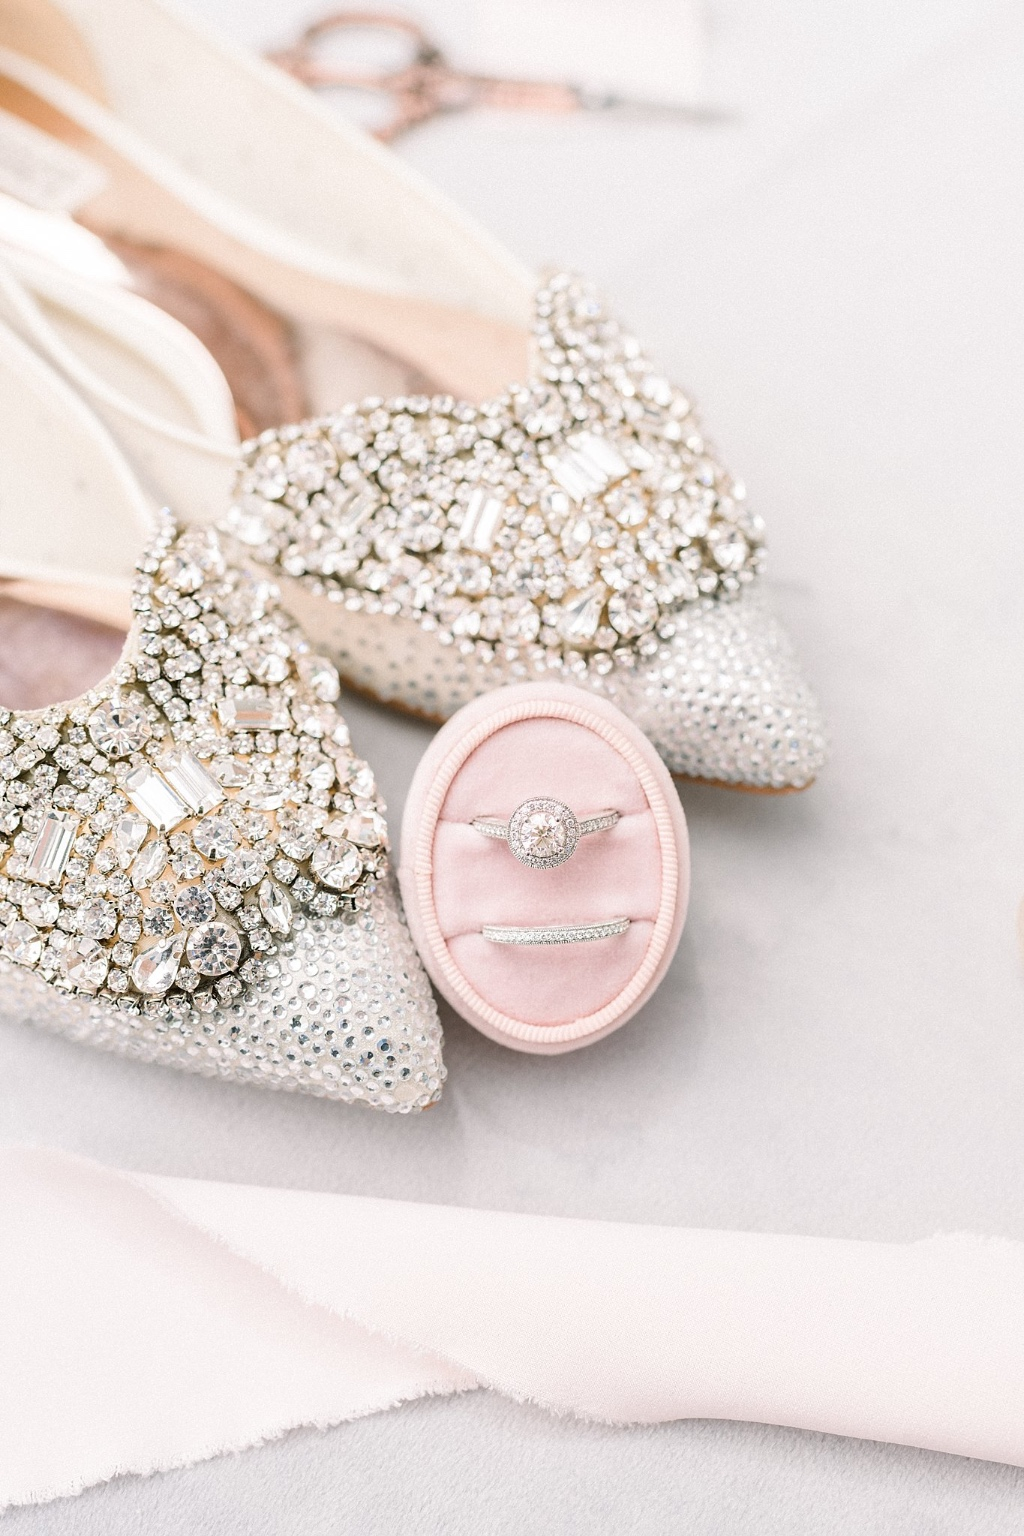 Gorgeous bridal details shot of Badgely Mischka shoes and wedding ring set.